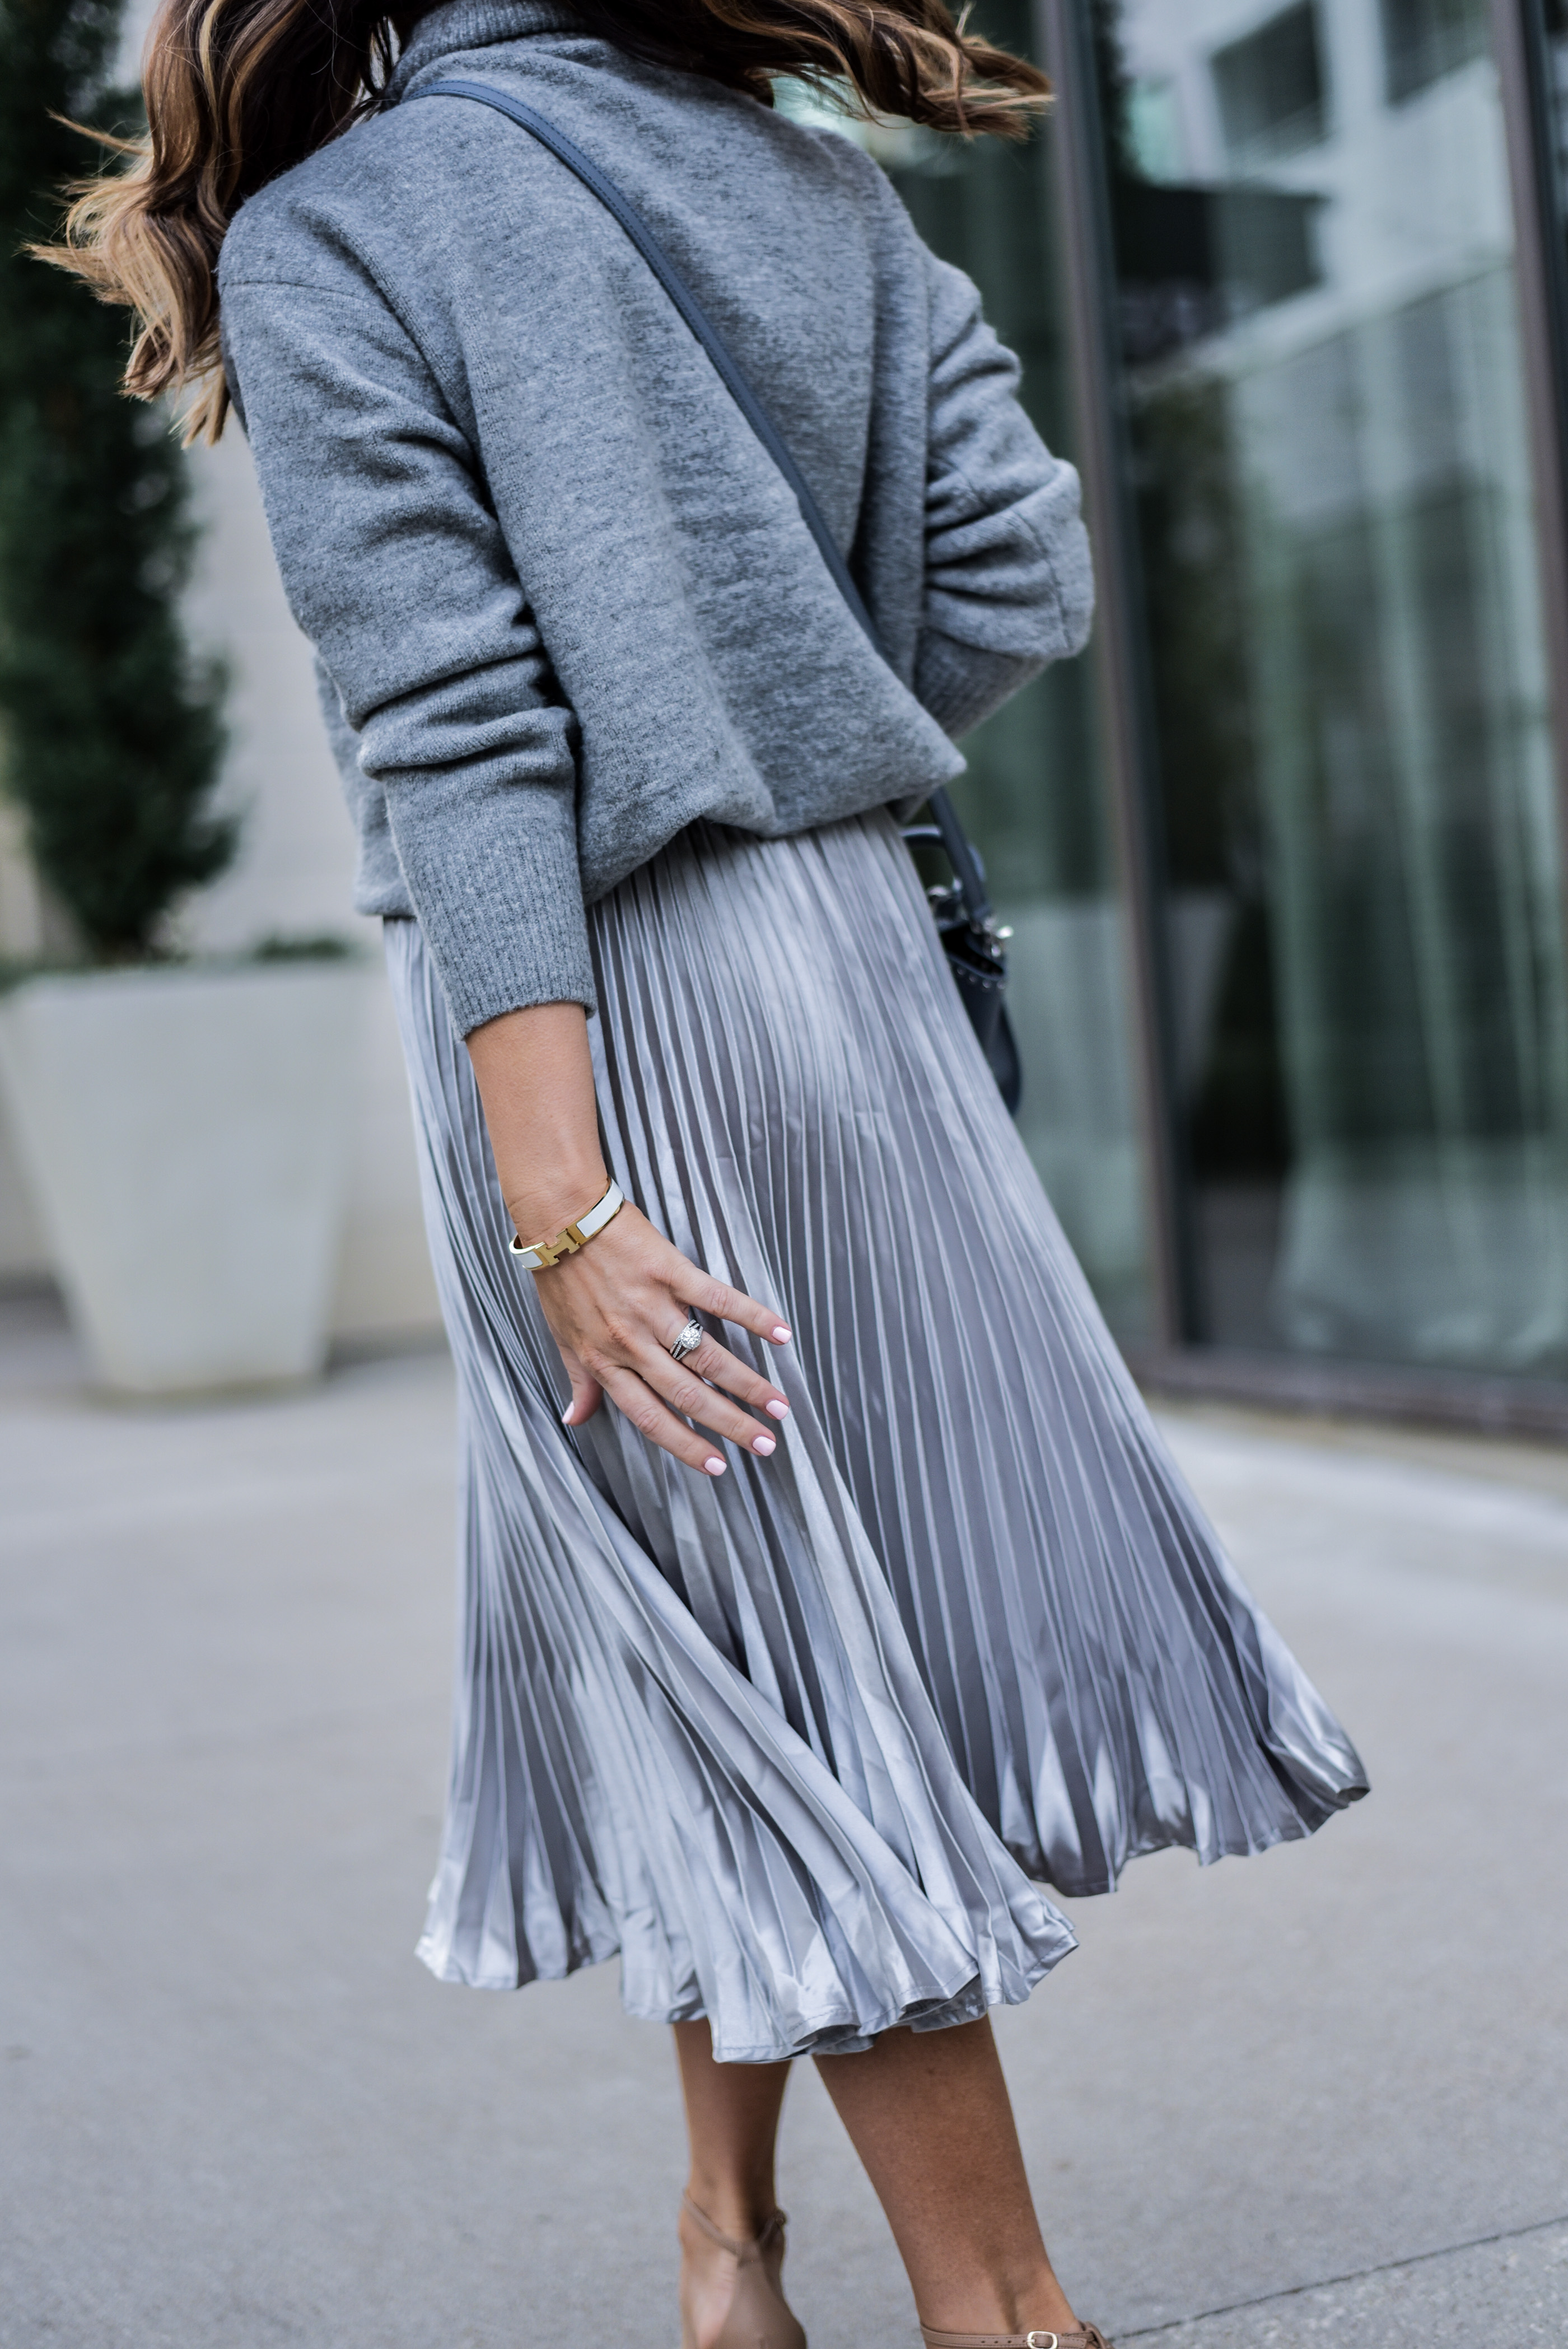 Tiffany Jais a Houston style blogger is wearing a metallic pleated skirt by ASOS with a chunky sweater and a ZAC Zac Posen bag, for a holiday chic look |